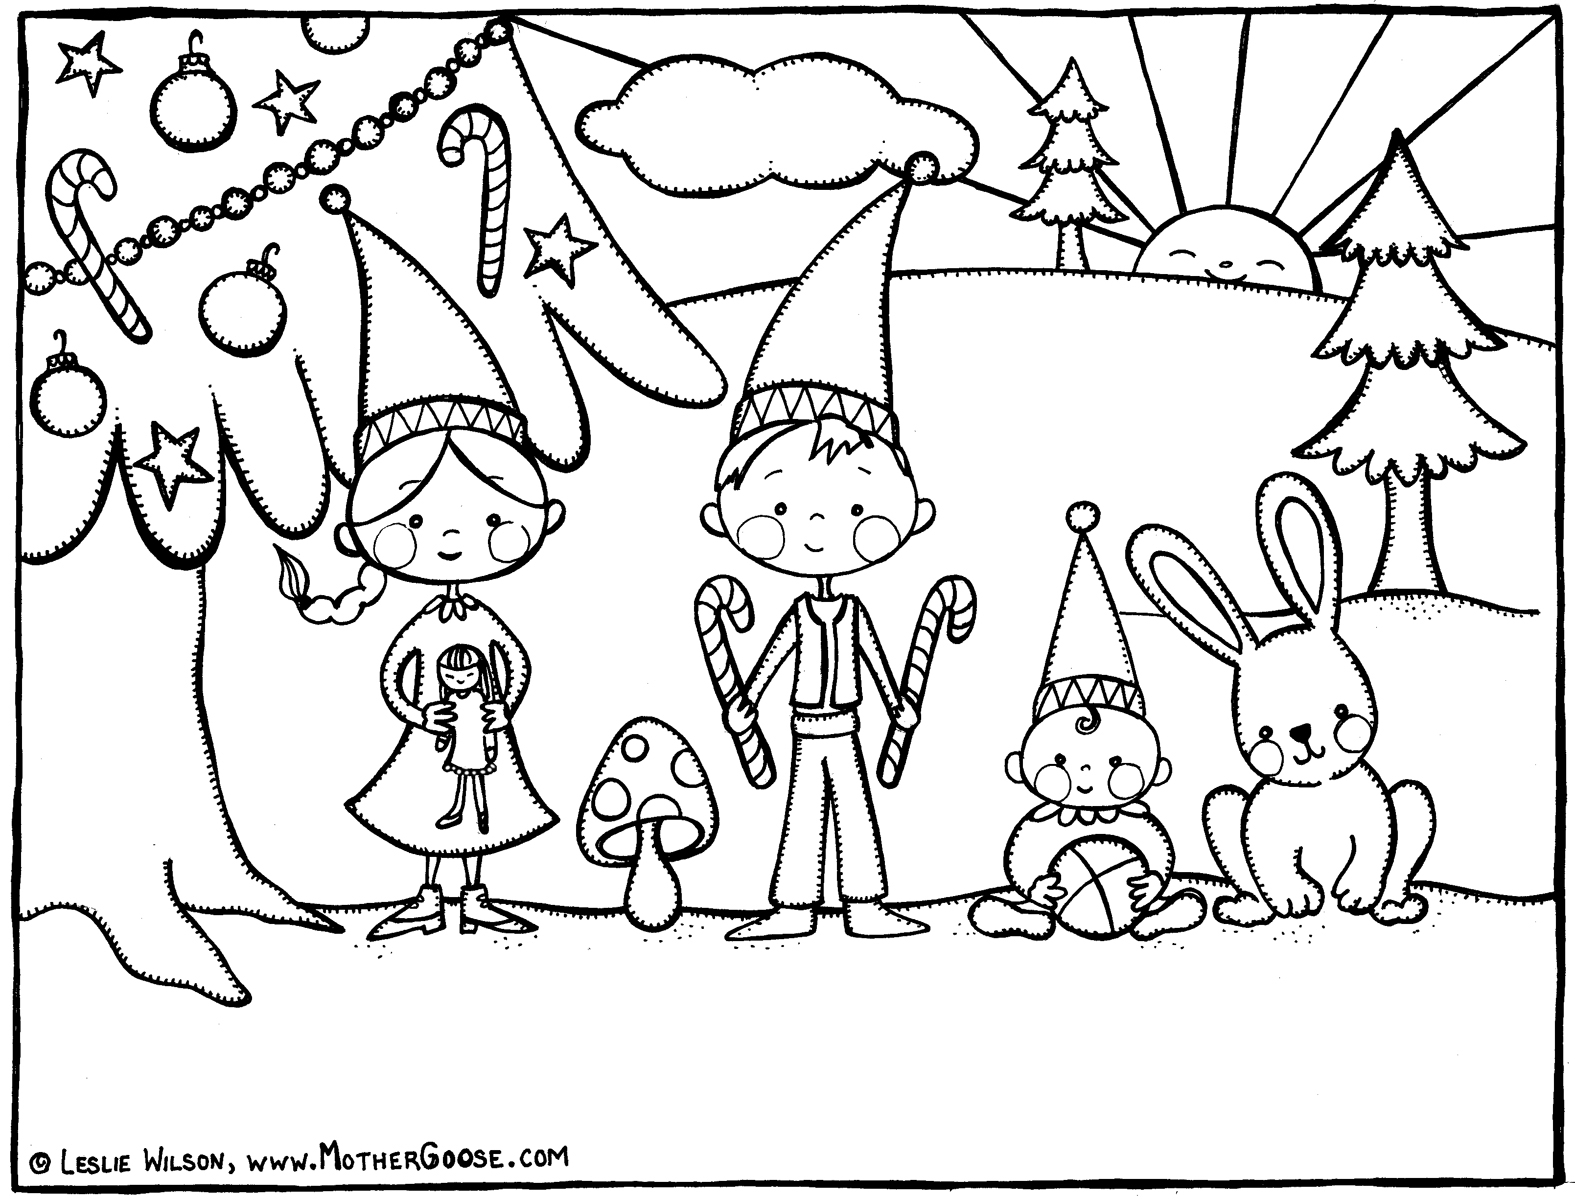 Brother And Sister Colouring Pages at GetColorings.com